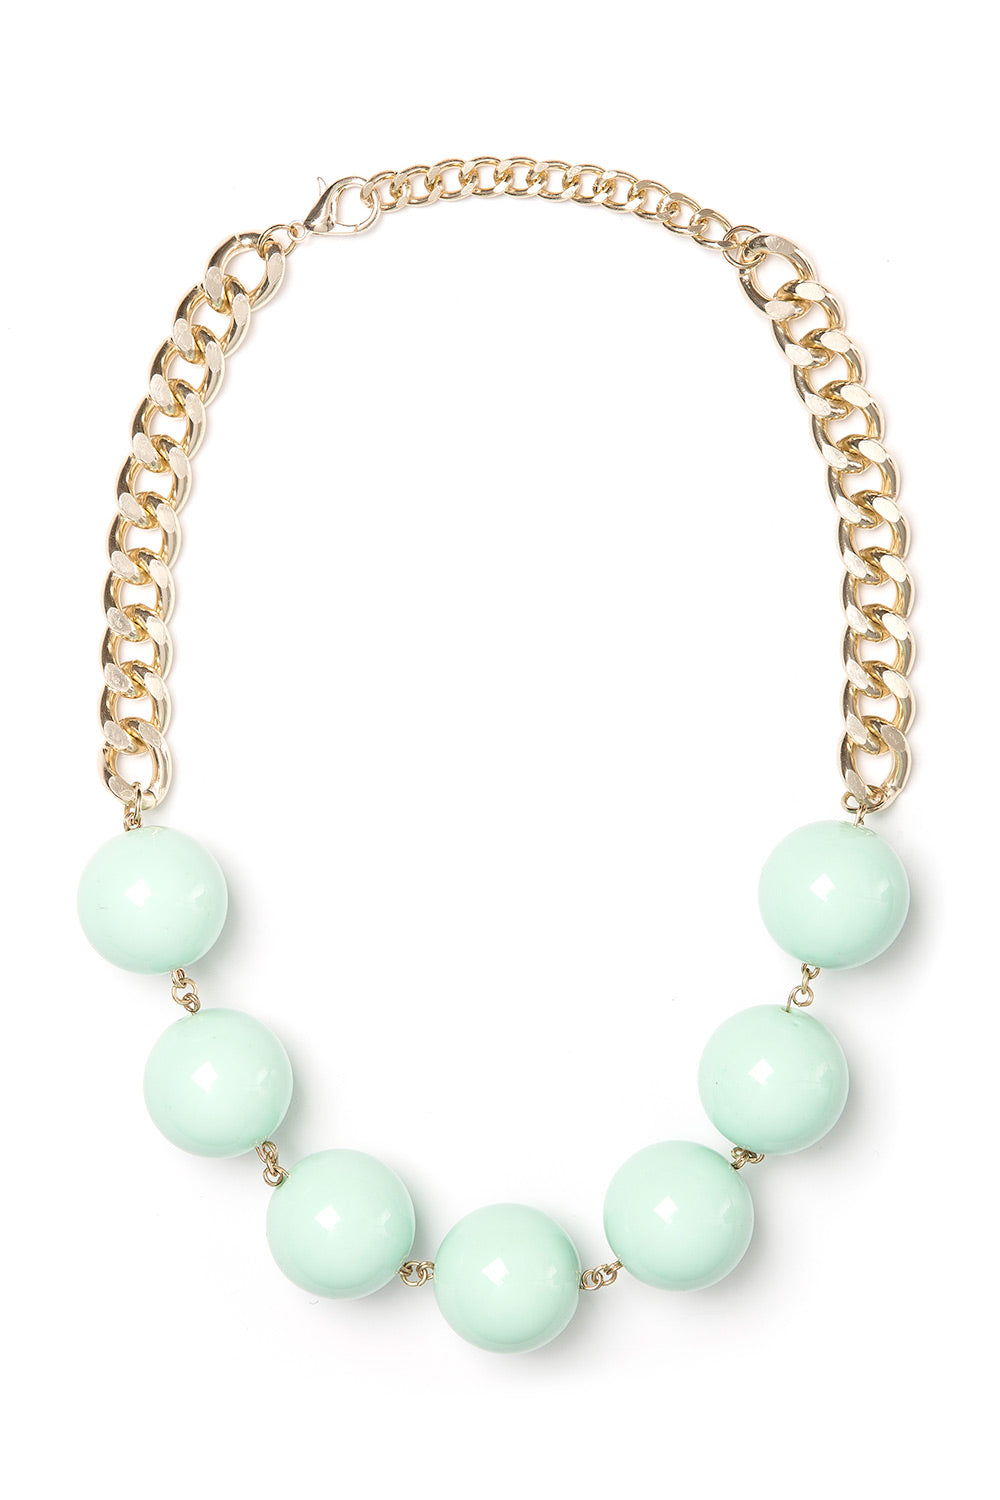 Type 1 Mega Mint Necklace